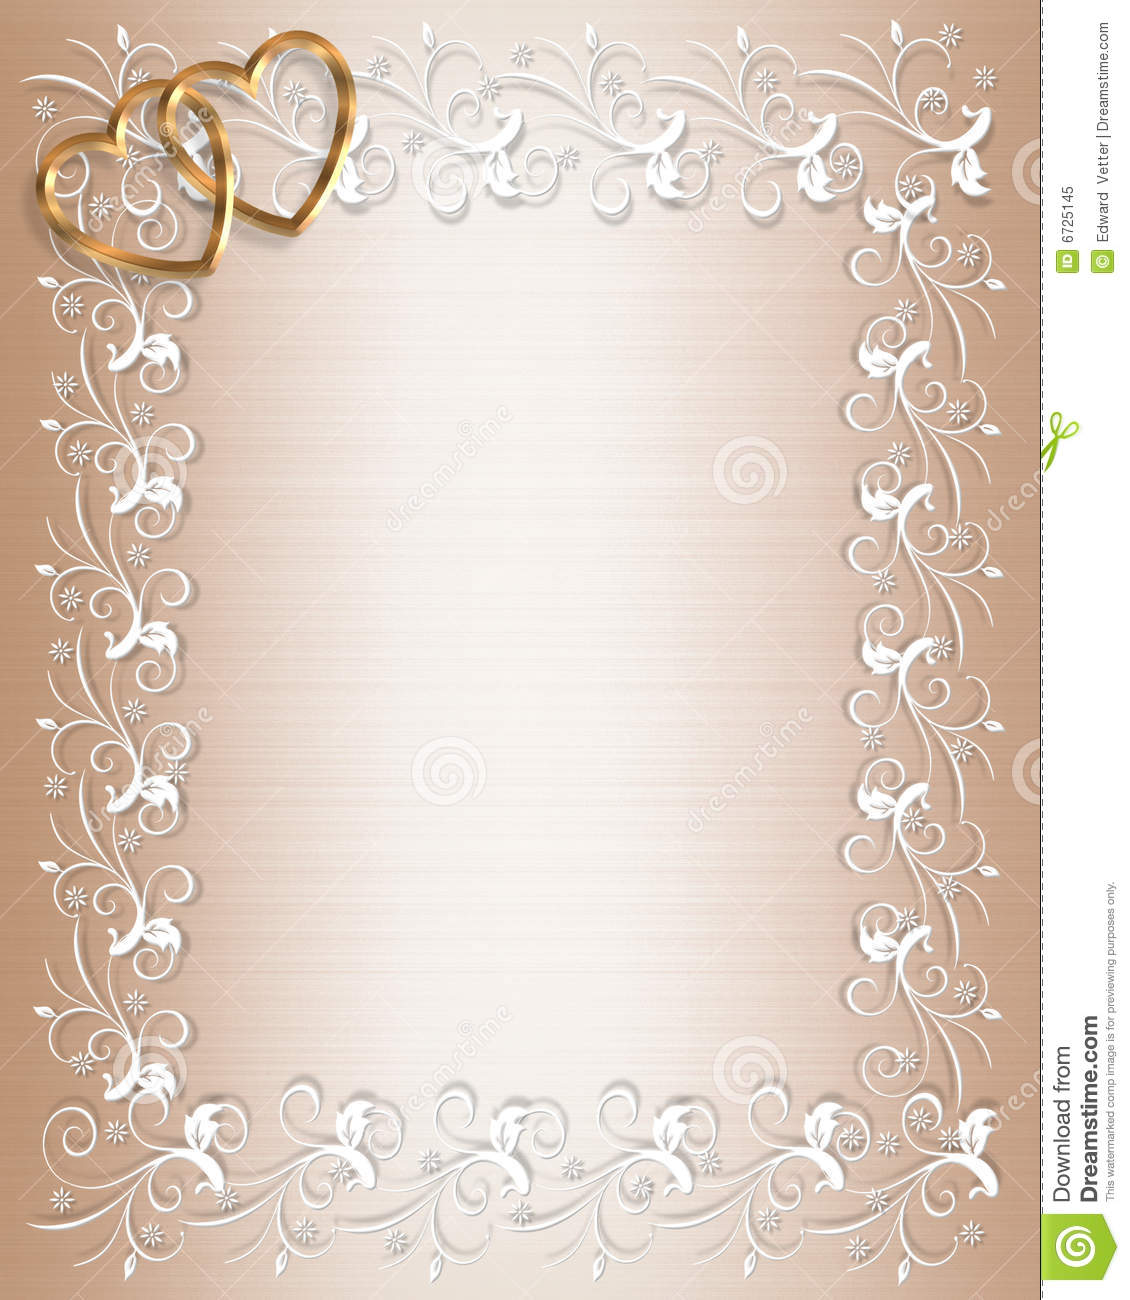 wedding invitation border satin royalty free stock photo image - Wedding Invitation Background